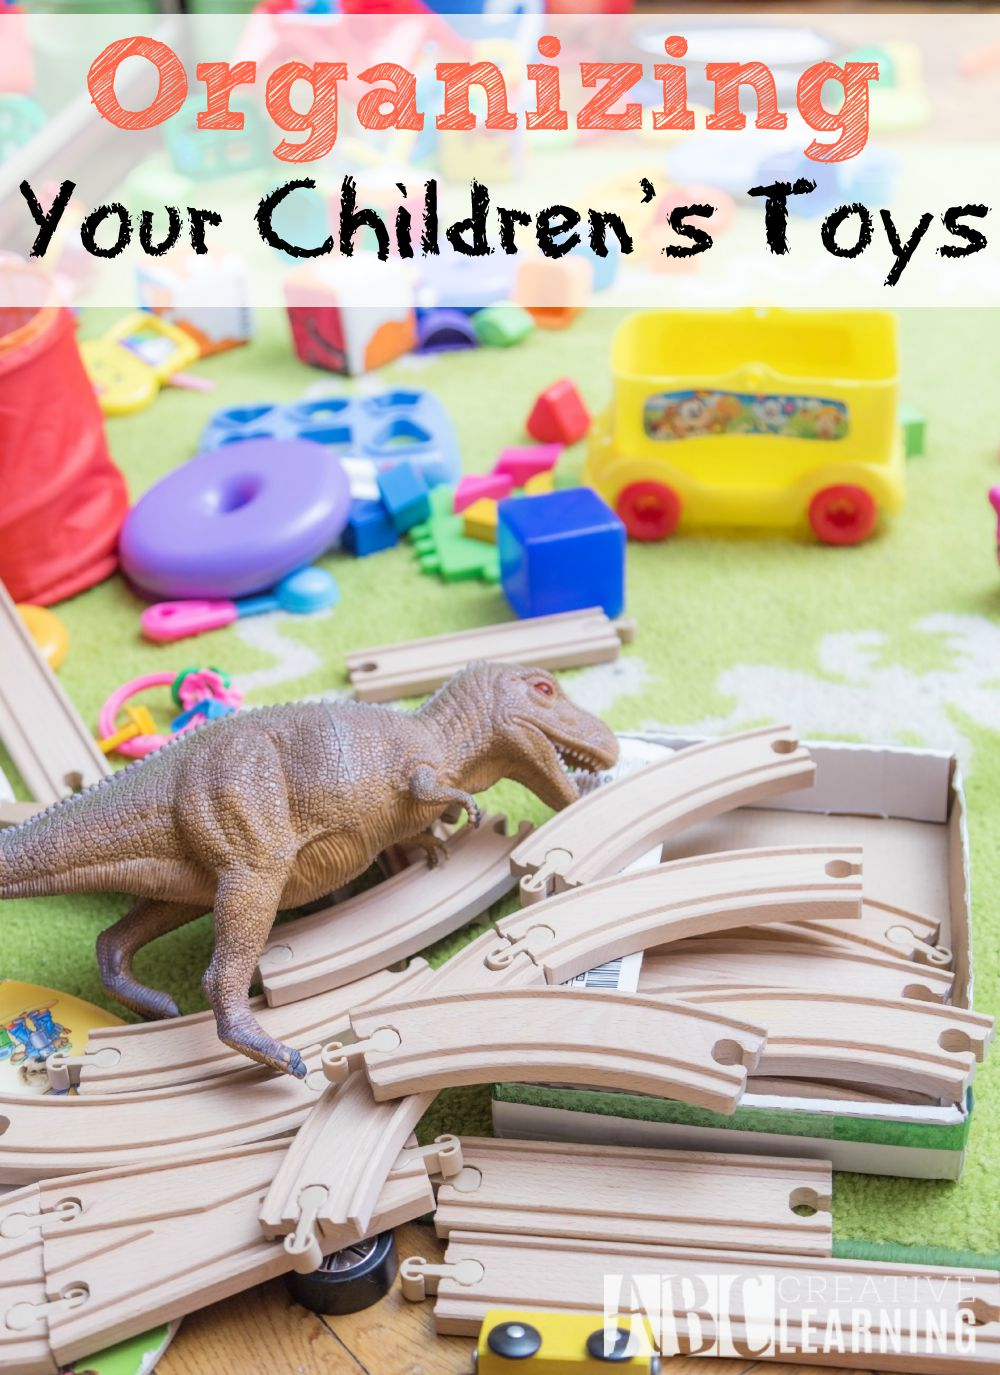 Organizing Your Children's Toys doesn't have to be hard or time consuming. Having a plan is key to keeping those toys at bay! - abccreativelearning.com